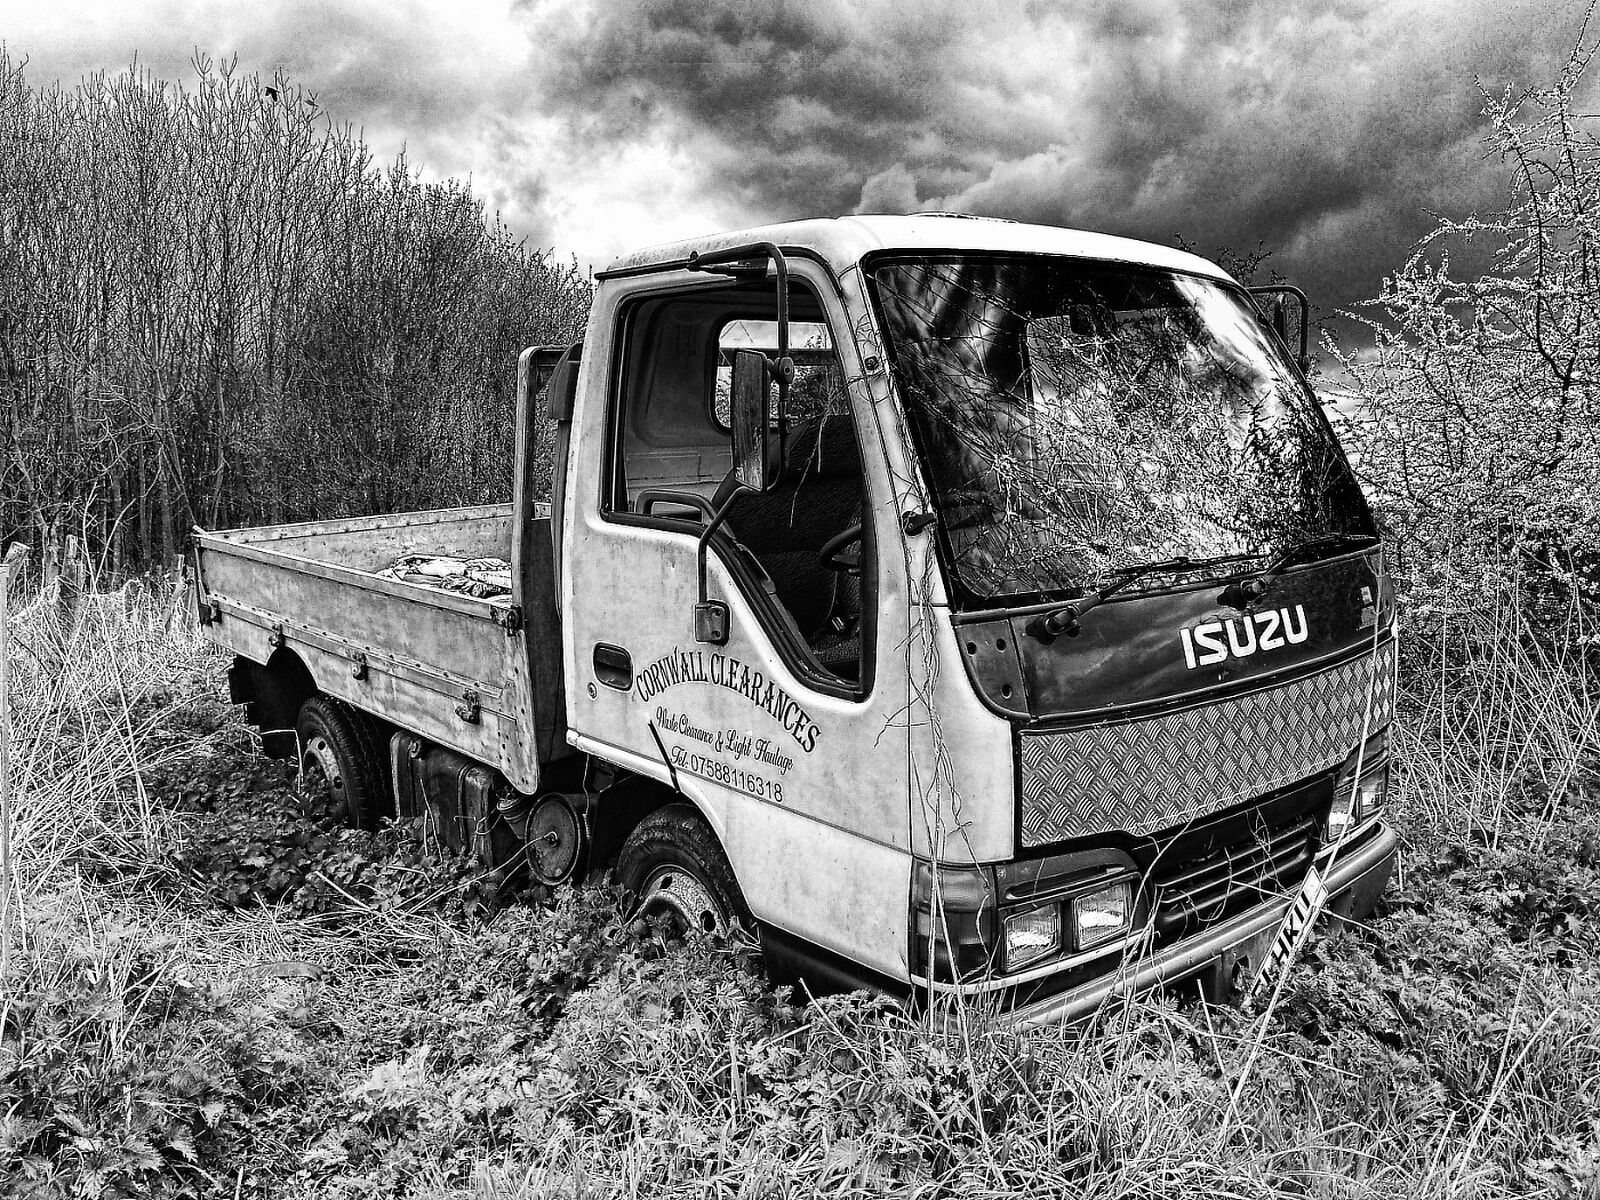 Commended Monochrome: Left to Rust By James Mann